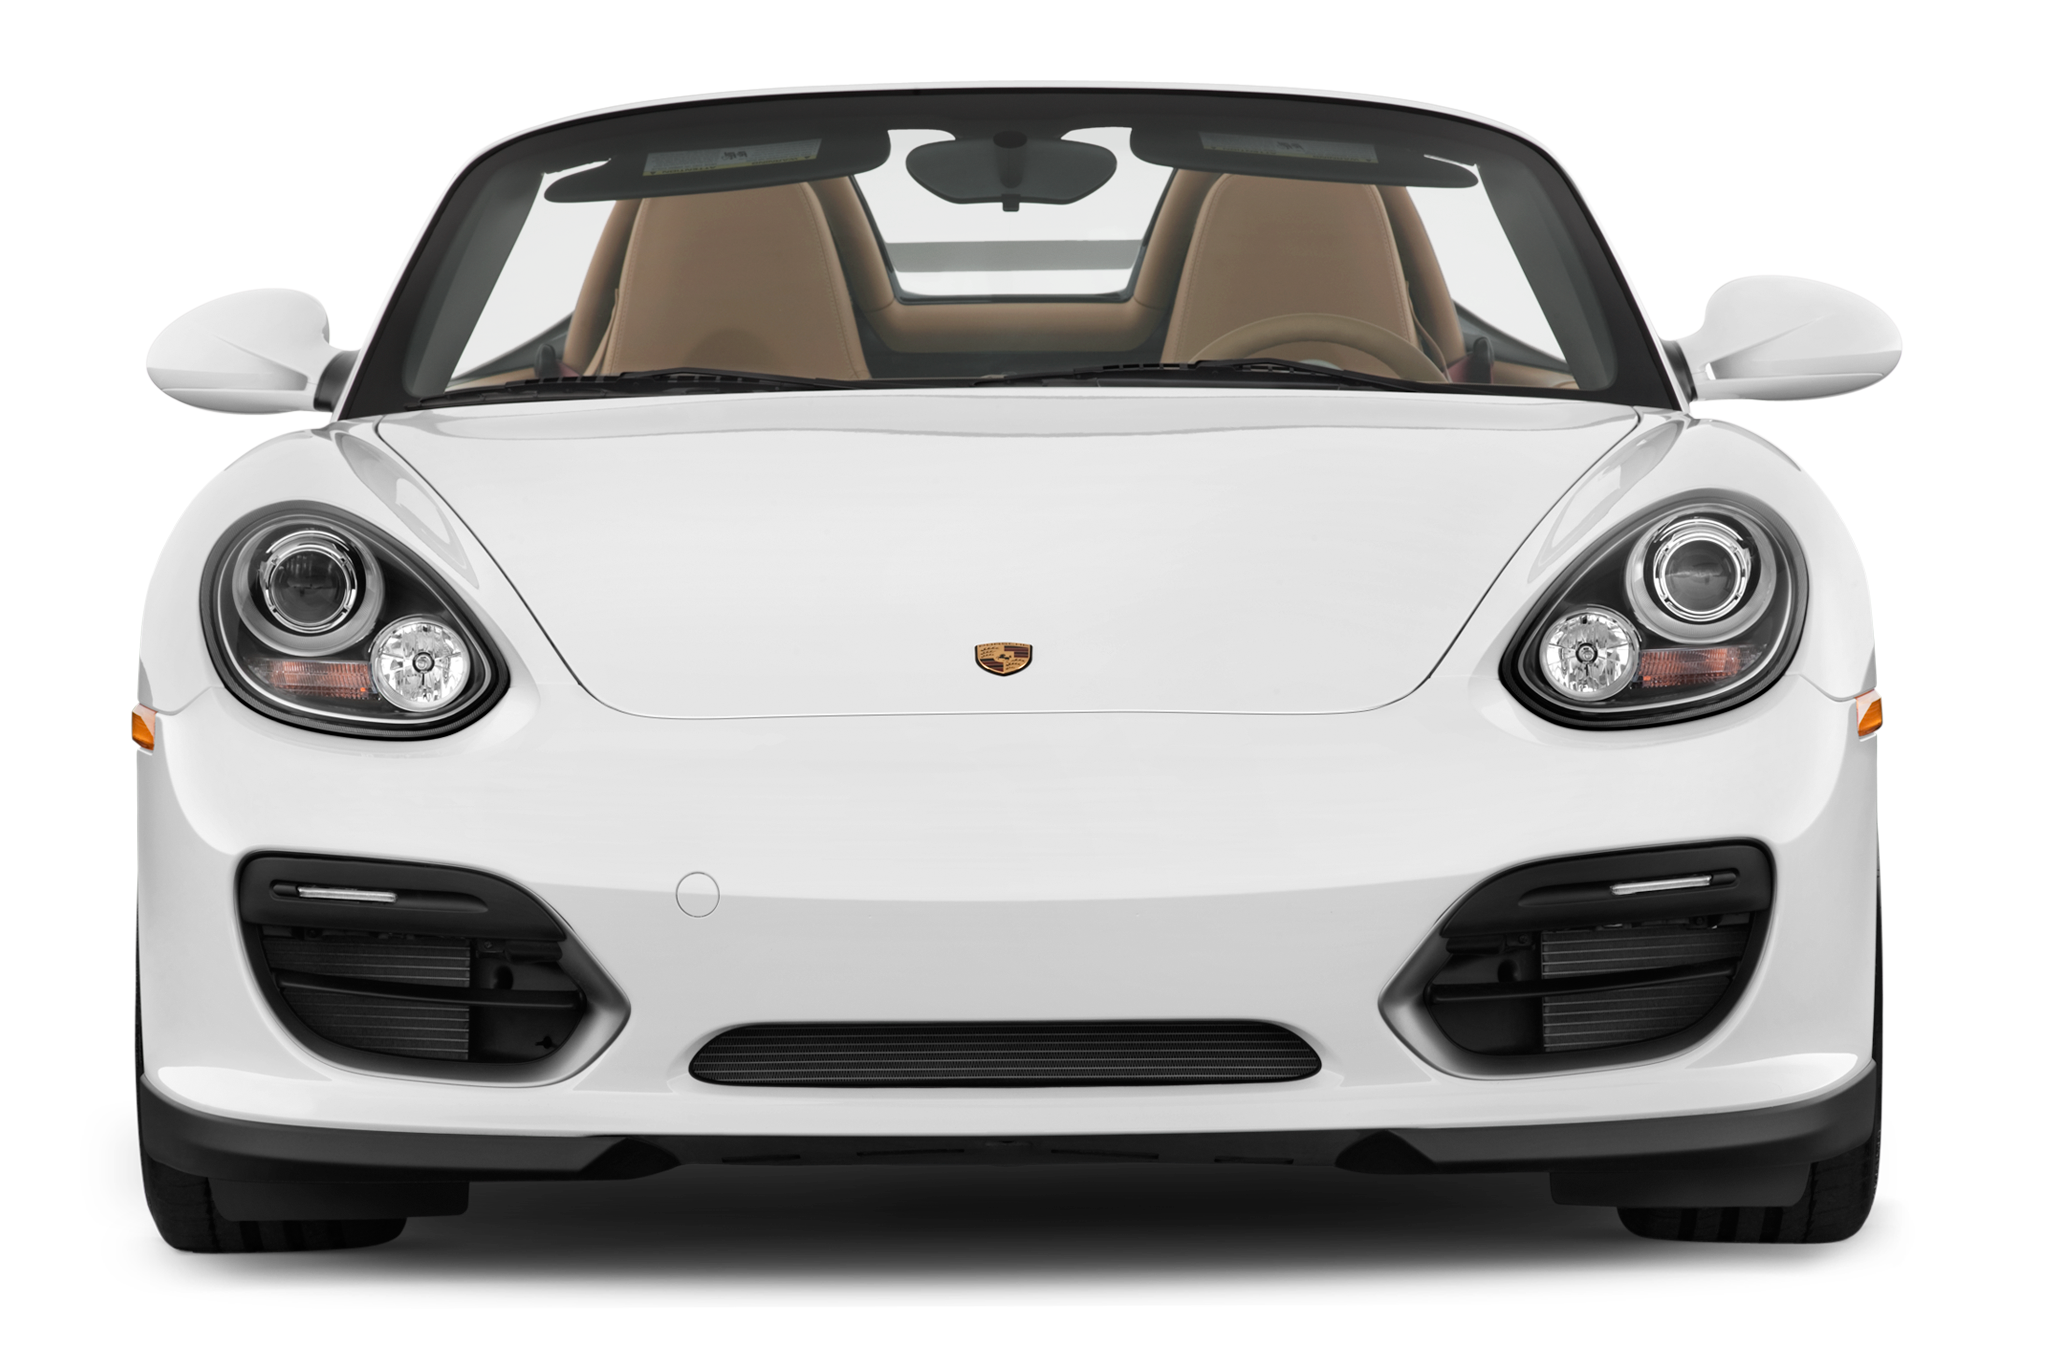 Porsche vector engine. Next gen boxster may